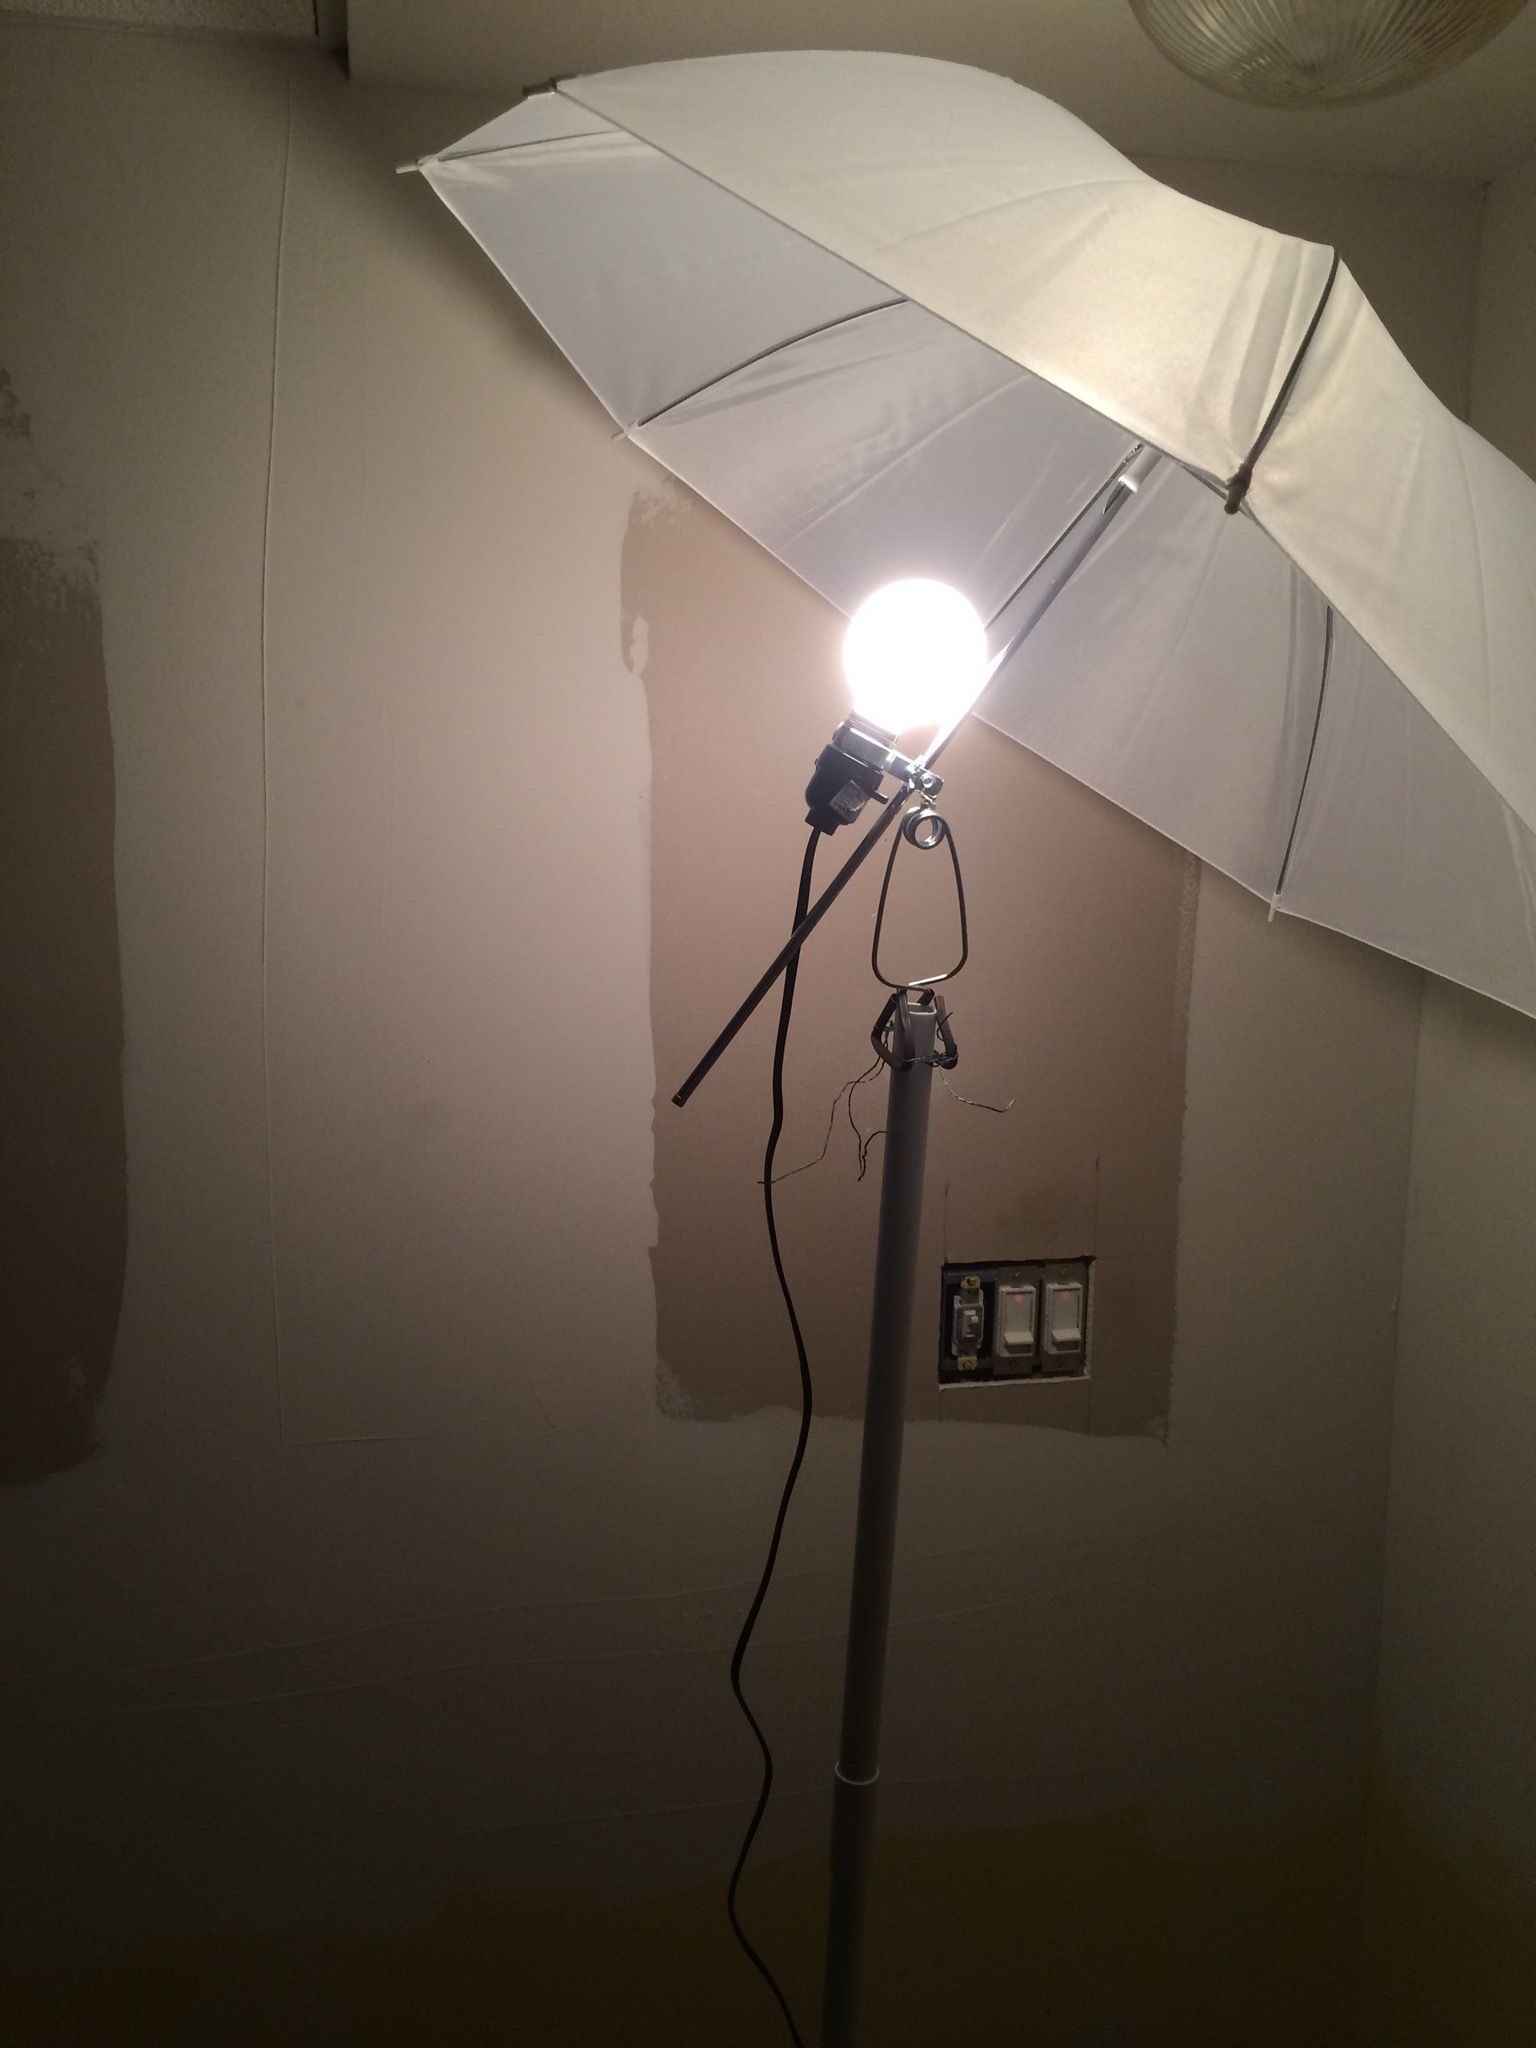 deals crank with lowes garden ft lights shopping cheap casun powered lighting umbrella get guides find solar quotations led hanging on offset patio